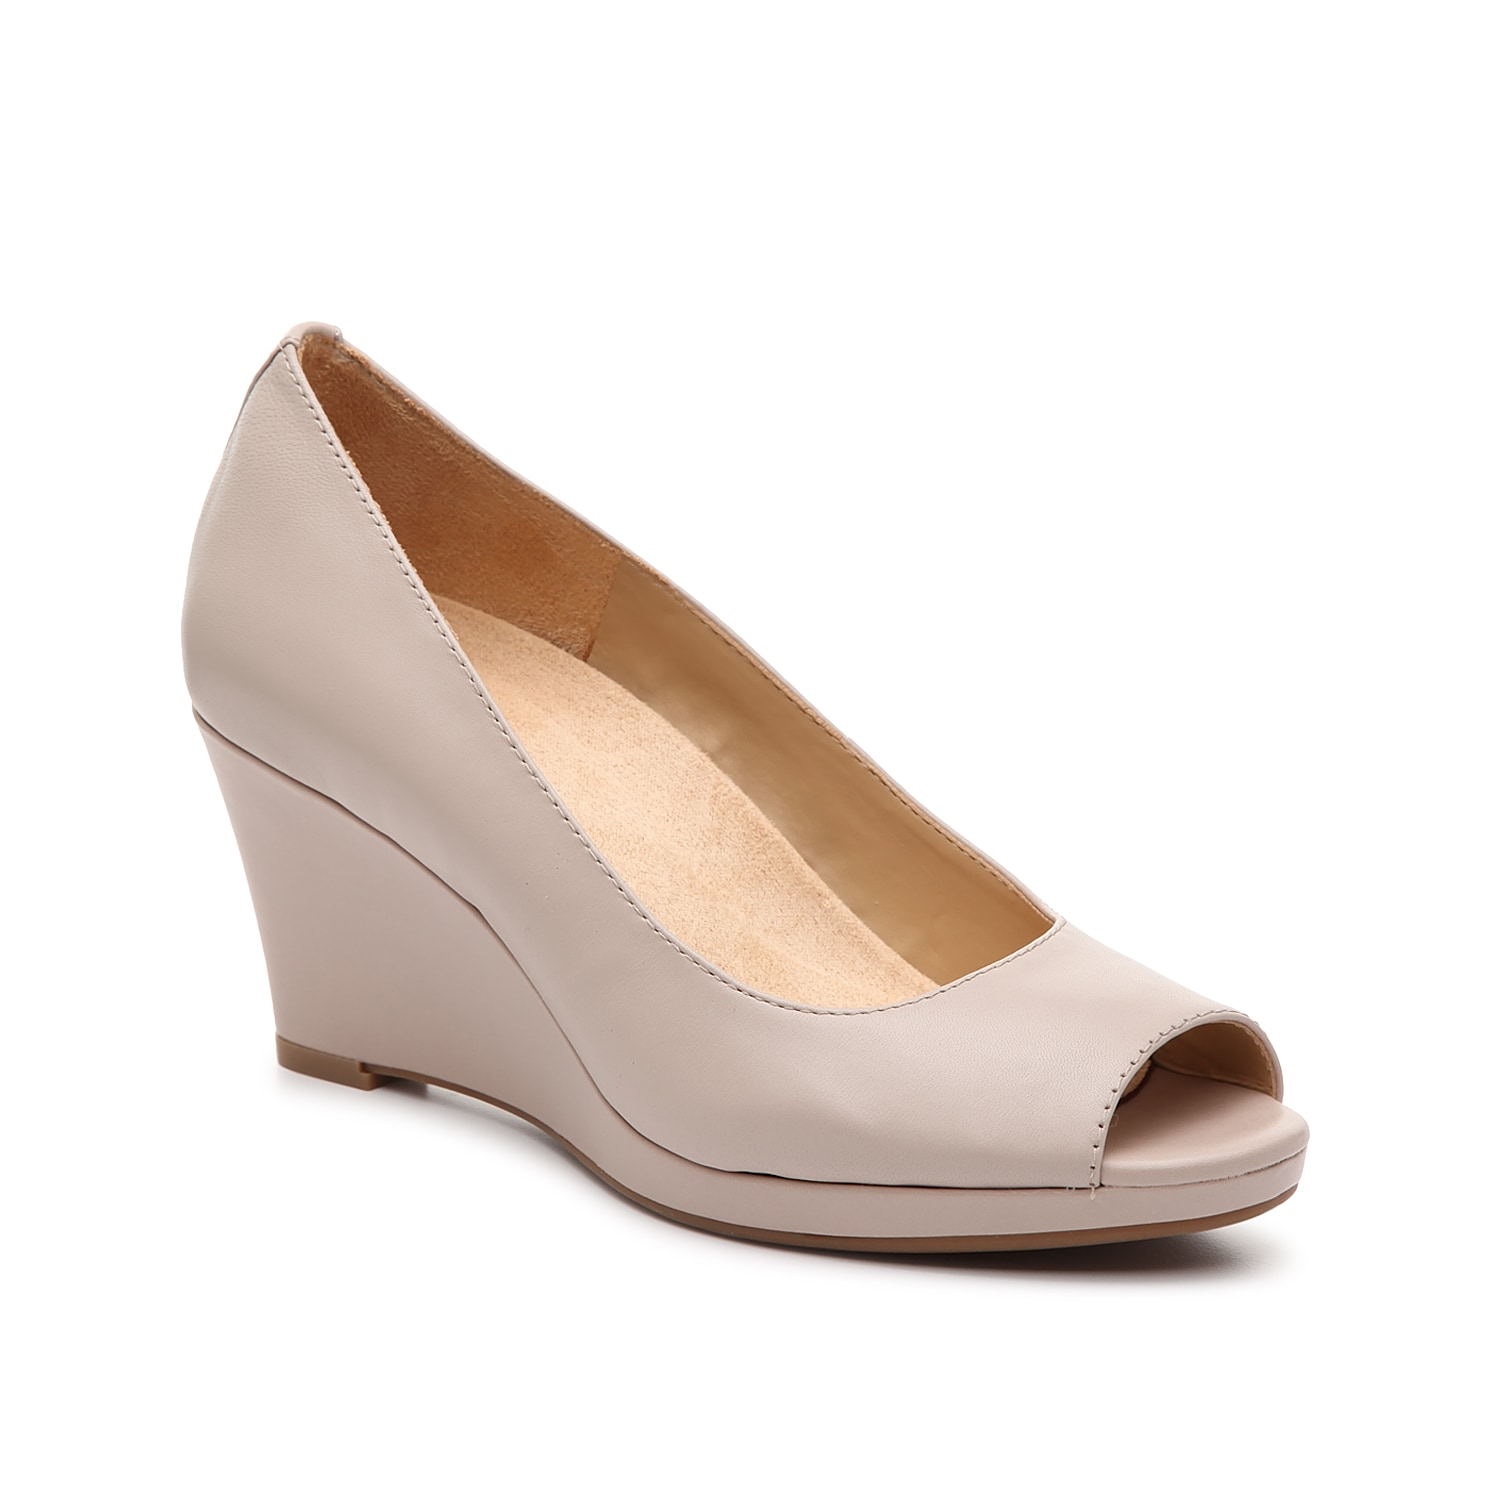 Dress up your ensemble with the Sienna wedge pump from Naturalizer. The clean, leather construction and peep toe will show off your perfectly painted toe nails!